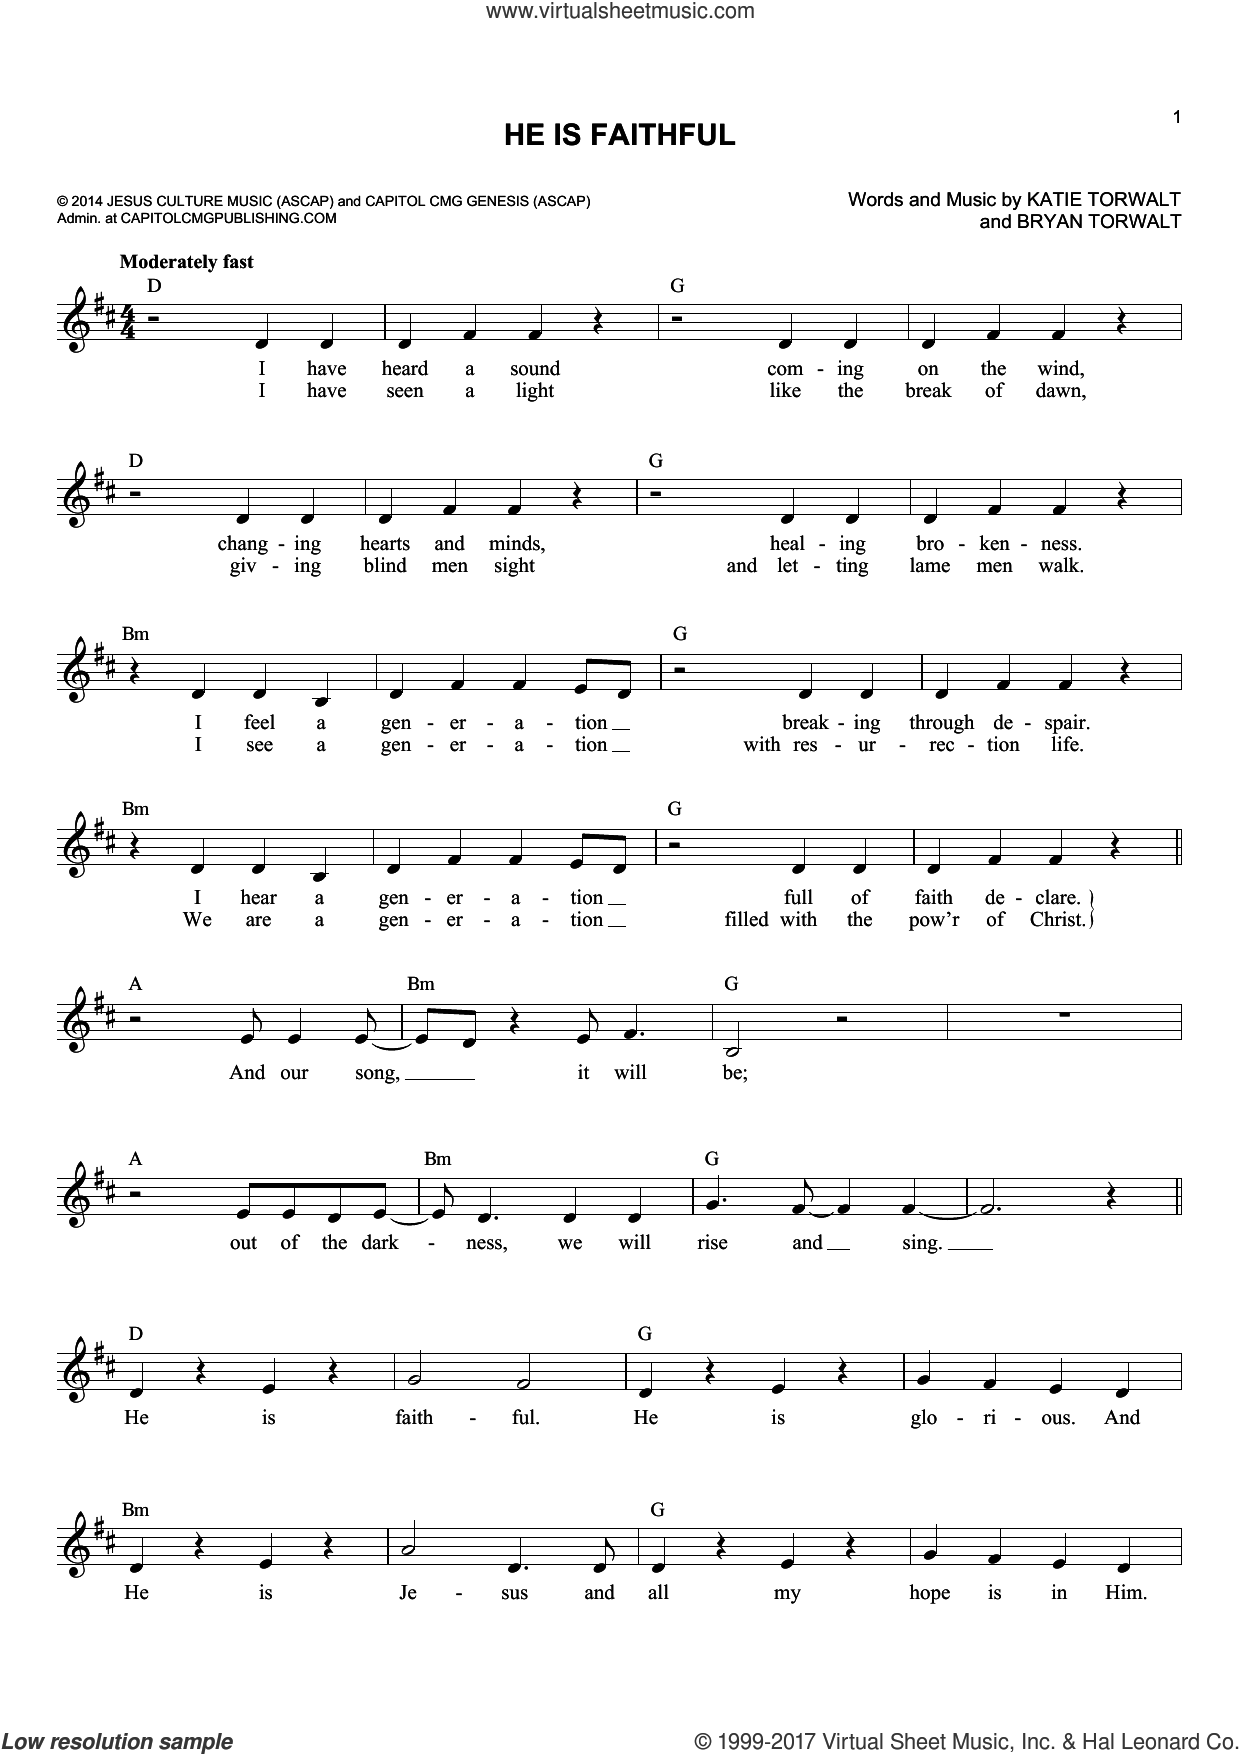 He Is Faithful sheet music for voice and other instruments (fake book) by Bryan Torwalt and Katie Torwalt, intermediate skill level